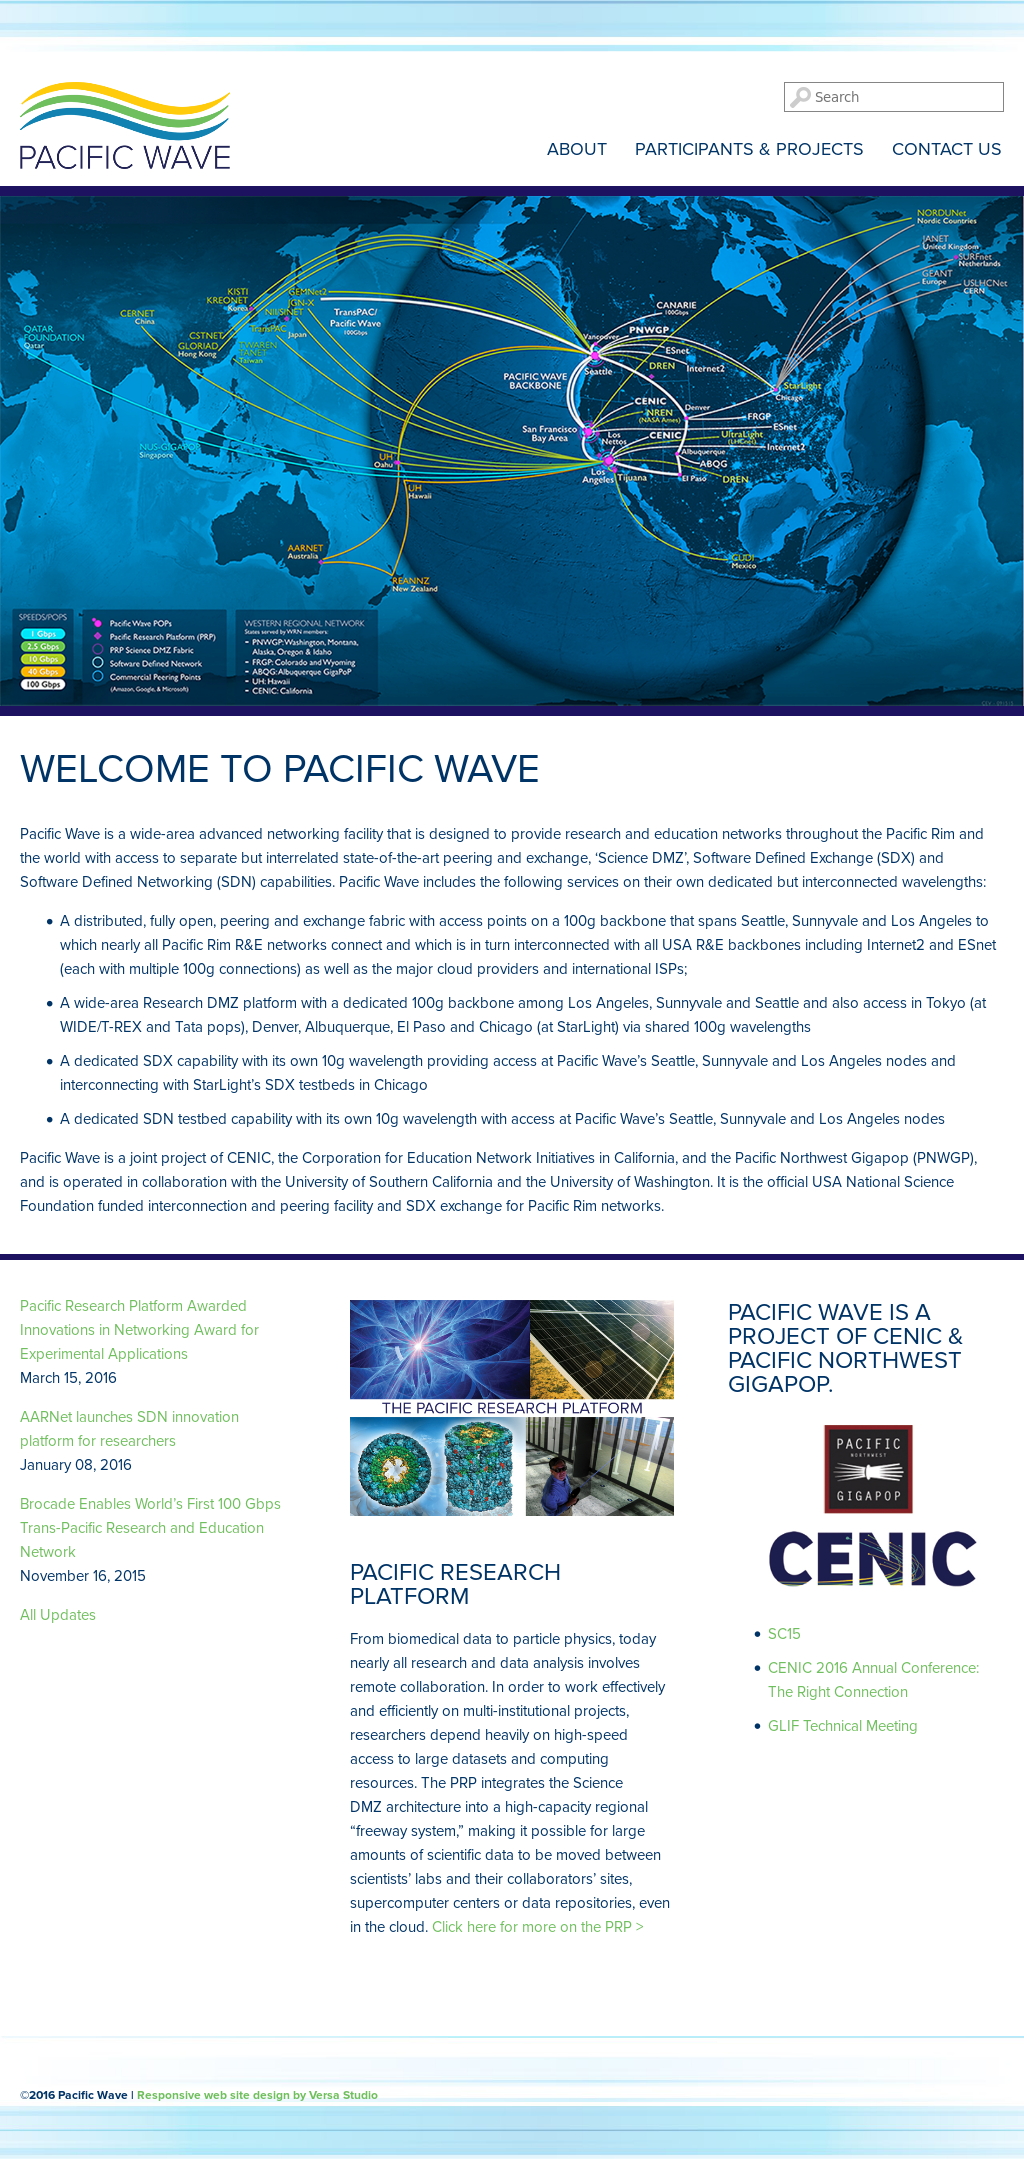 Pacificwave Competitors, Revenue and Employees - Owler Company Profile